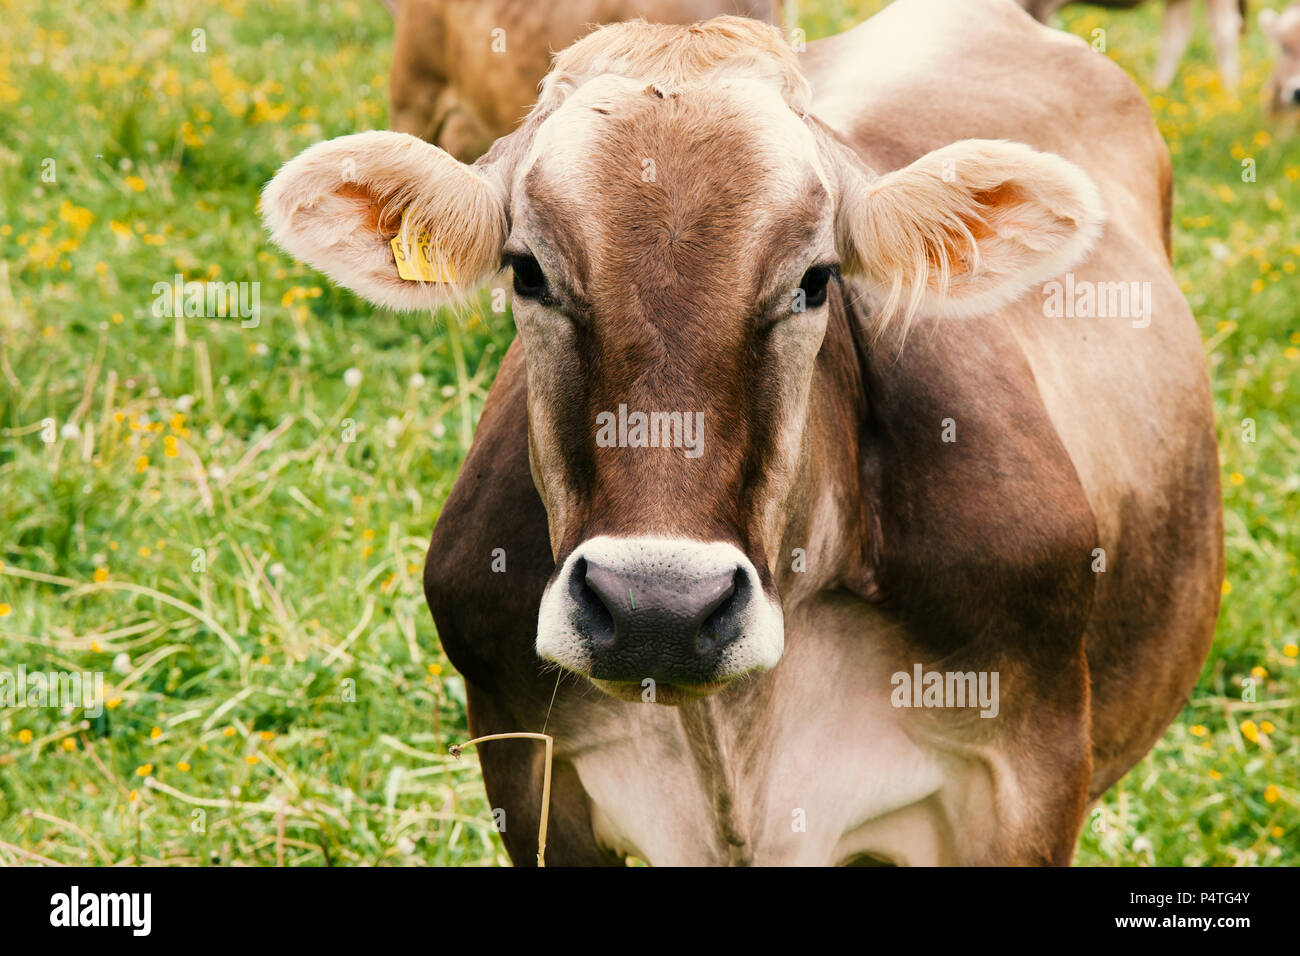 Cow, Kuh - Stock Image